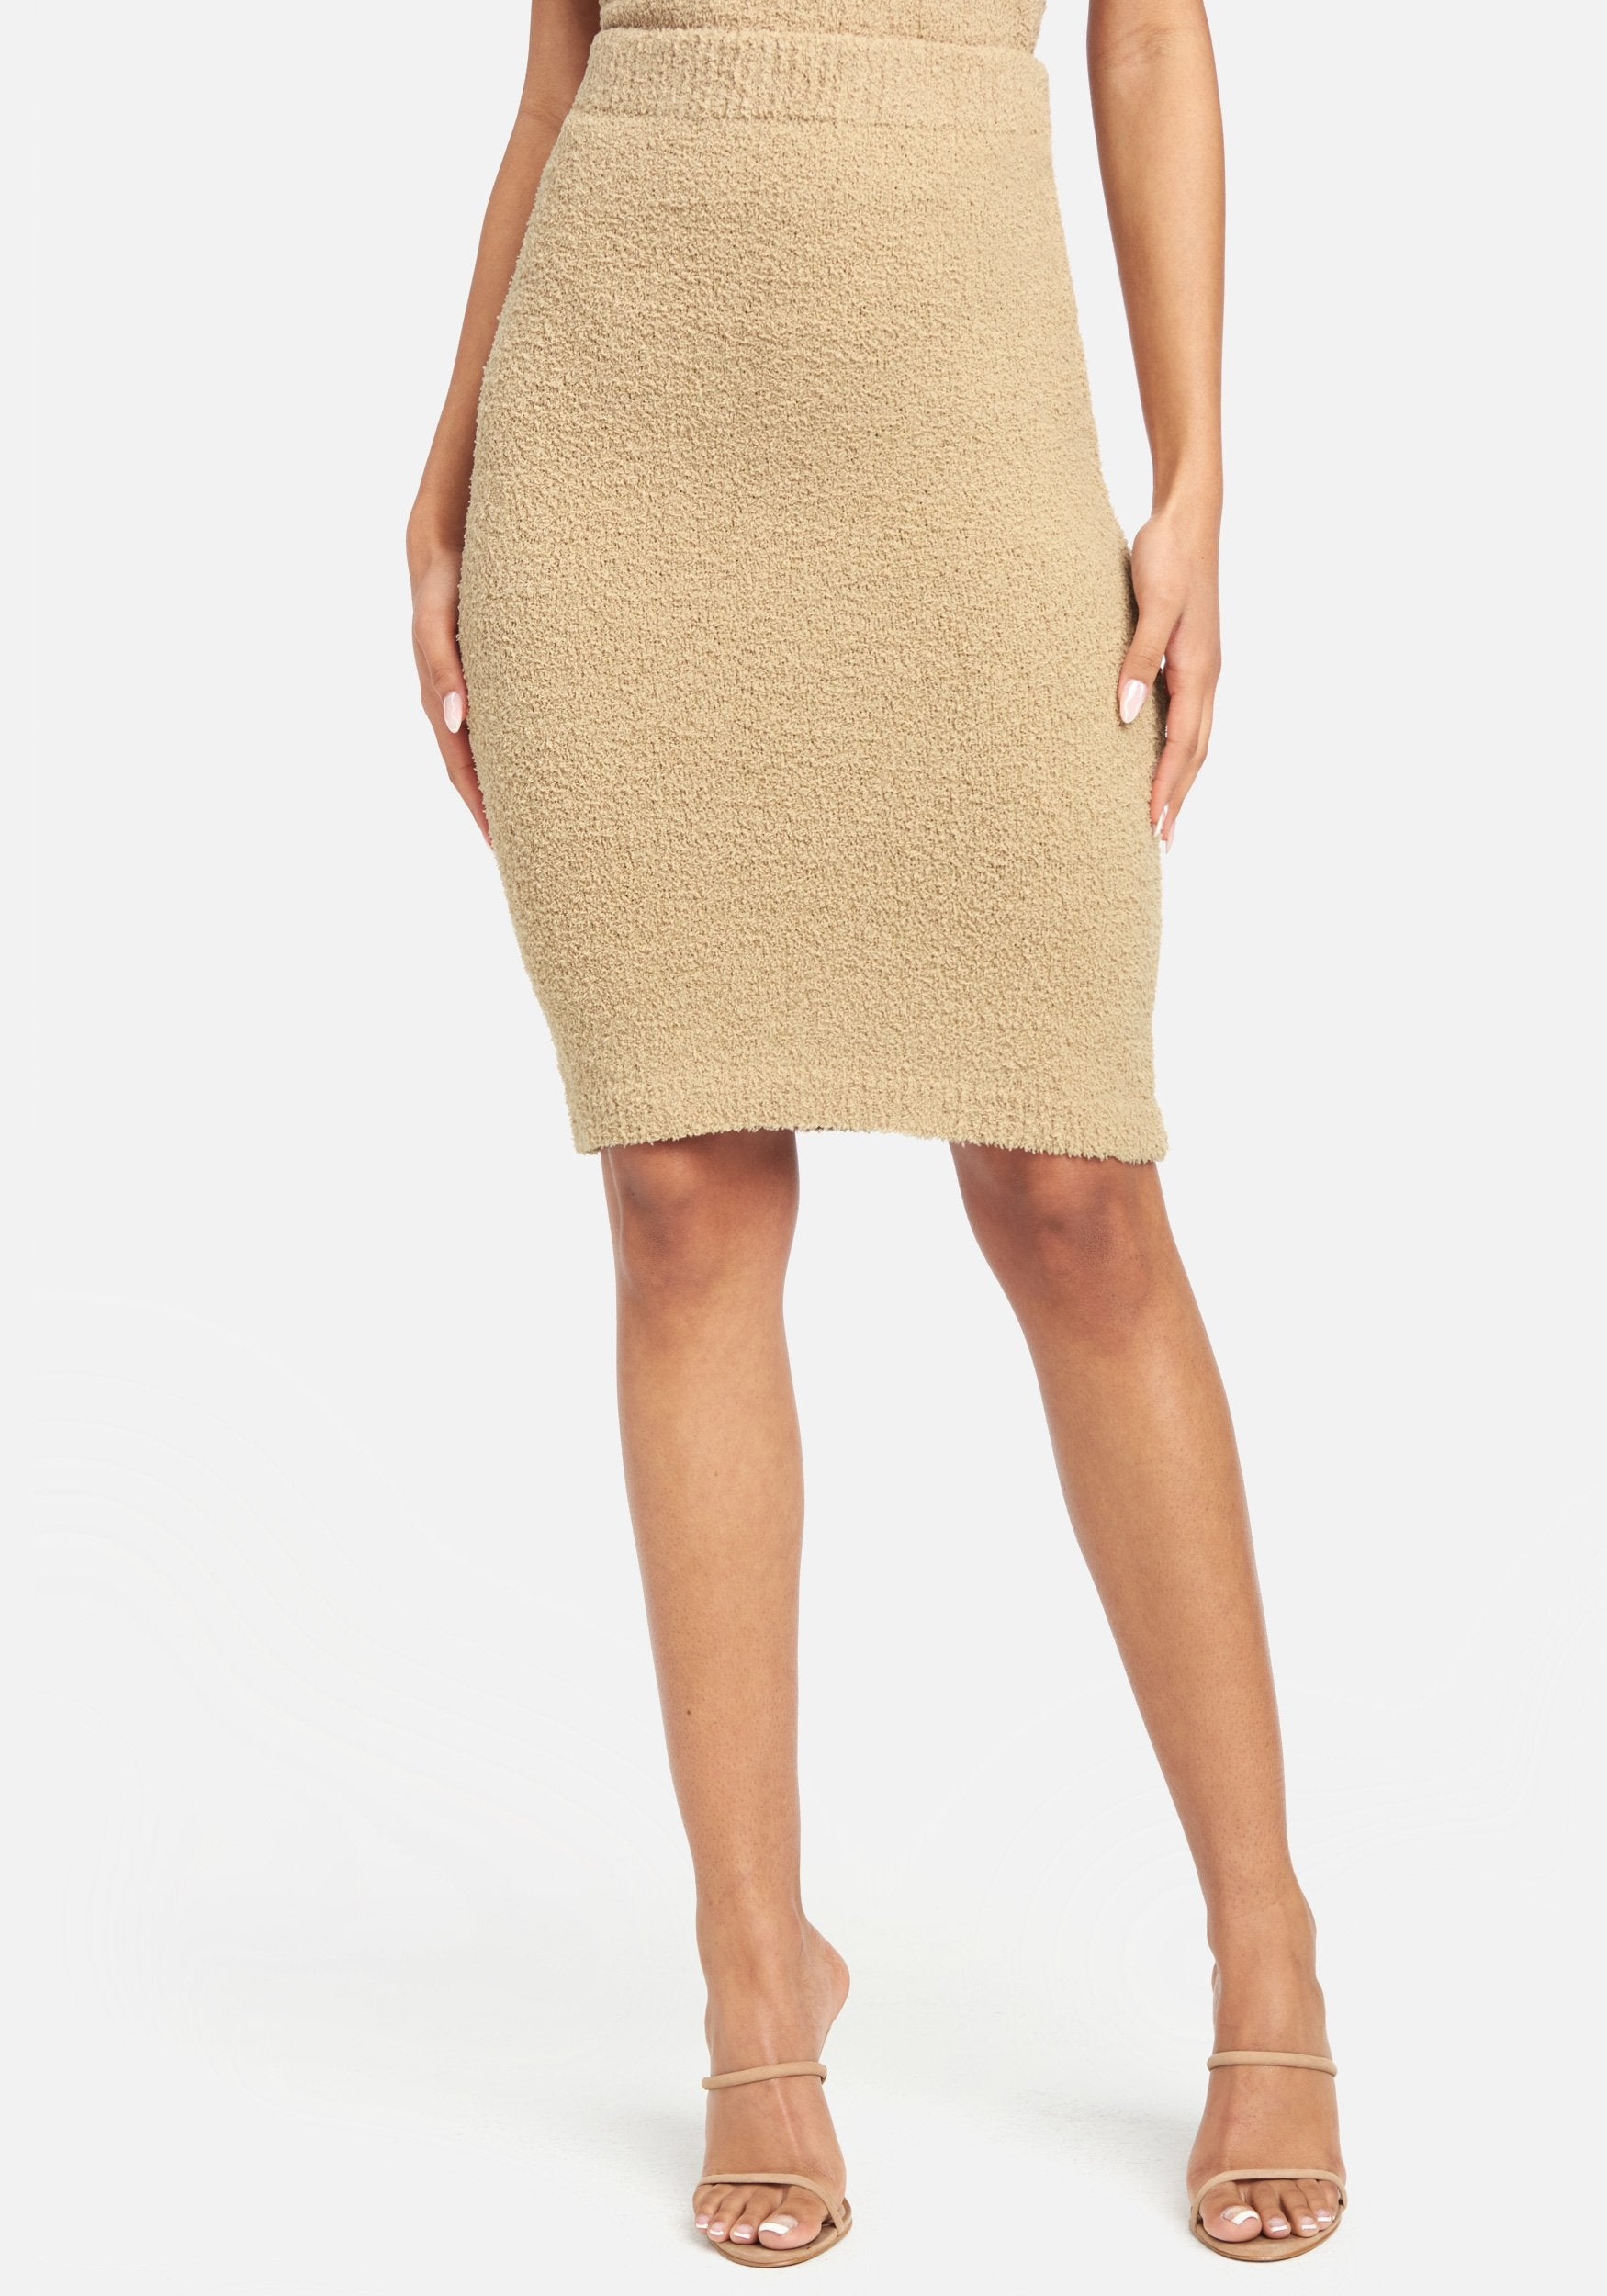 Bebe Women's Chenille Knit Skirt, Size XS in Tan Polyester